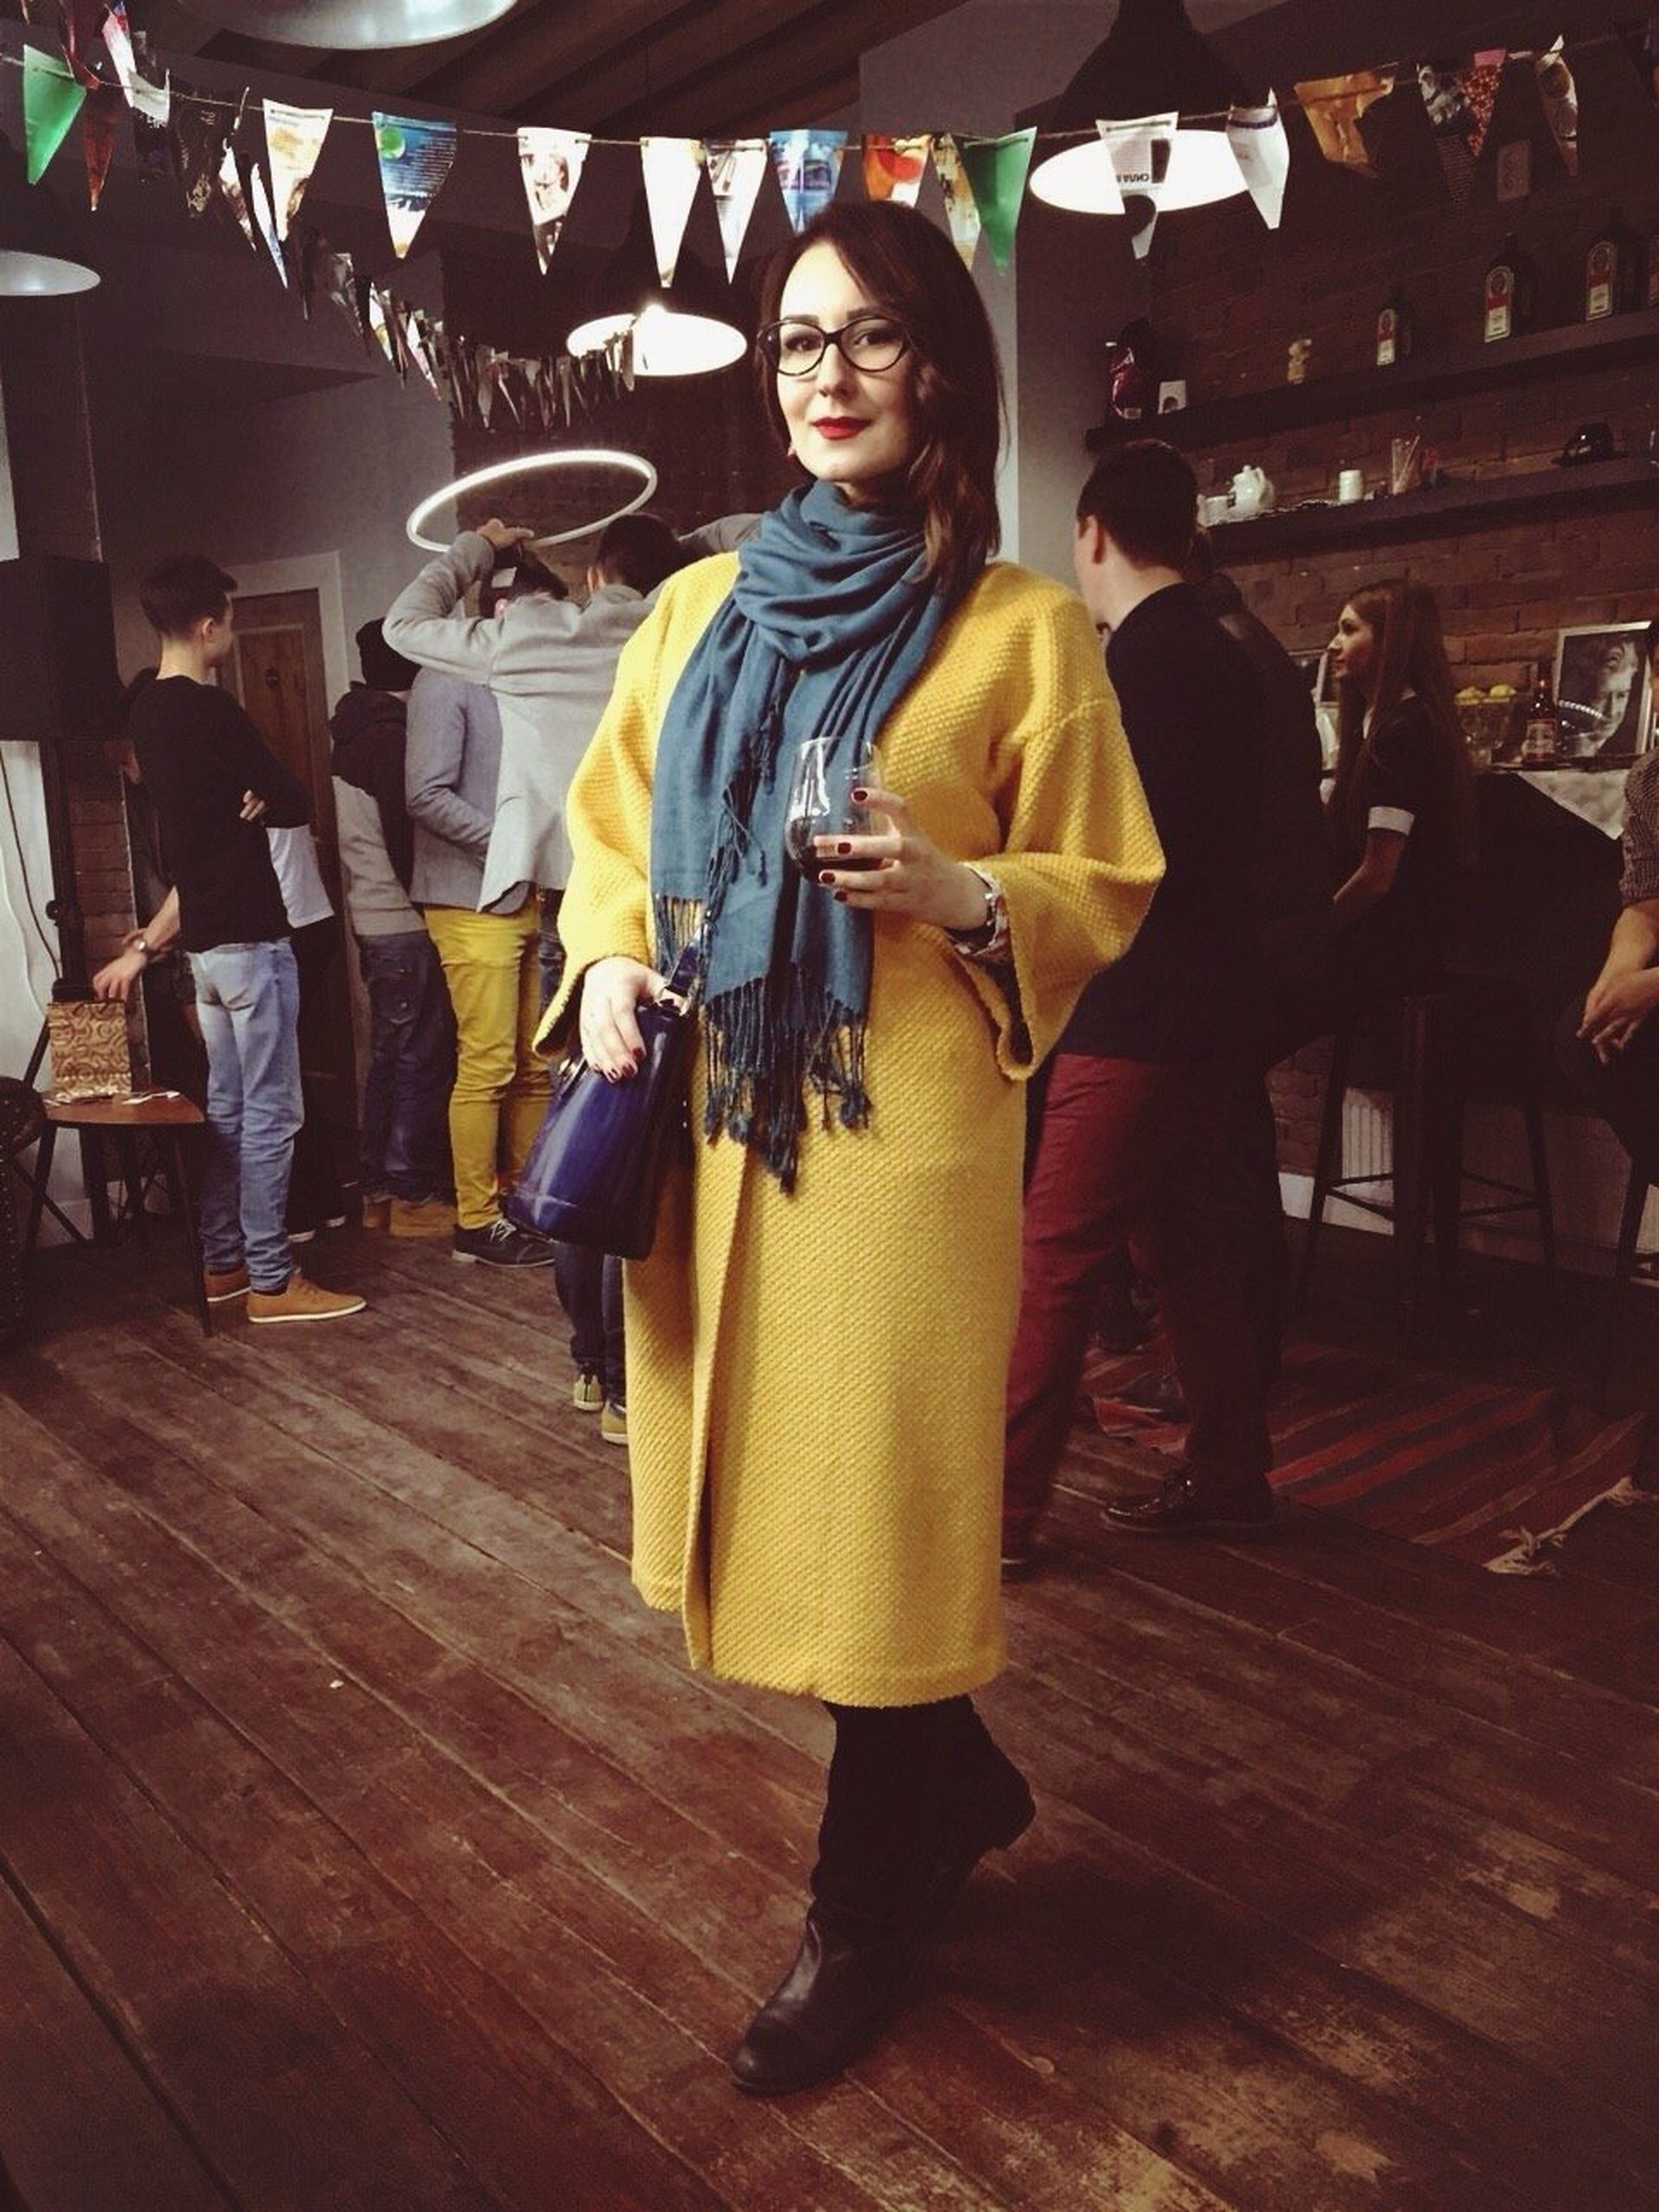 lifestyles, casual clothing, indoors, leisure activity, young adult, full length, person, front view, sitting, young women, standing, table, looking at camera, three quarter length, holding, portrait, smiling, happiness